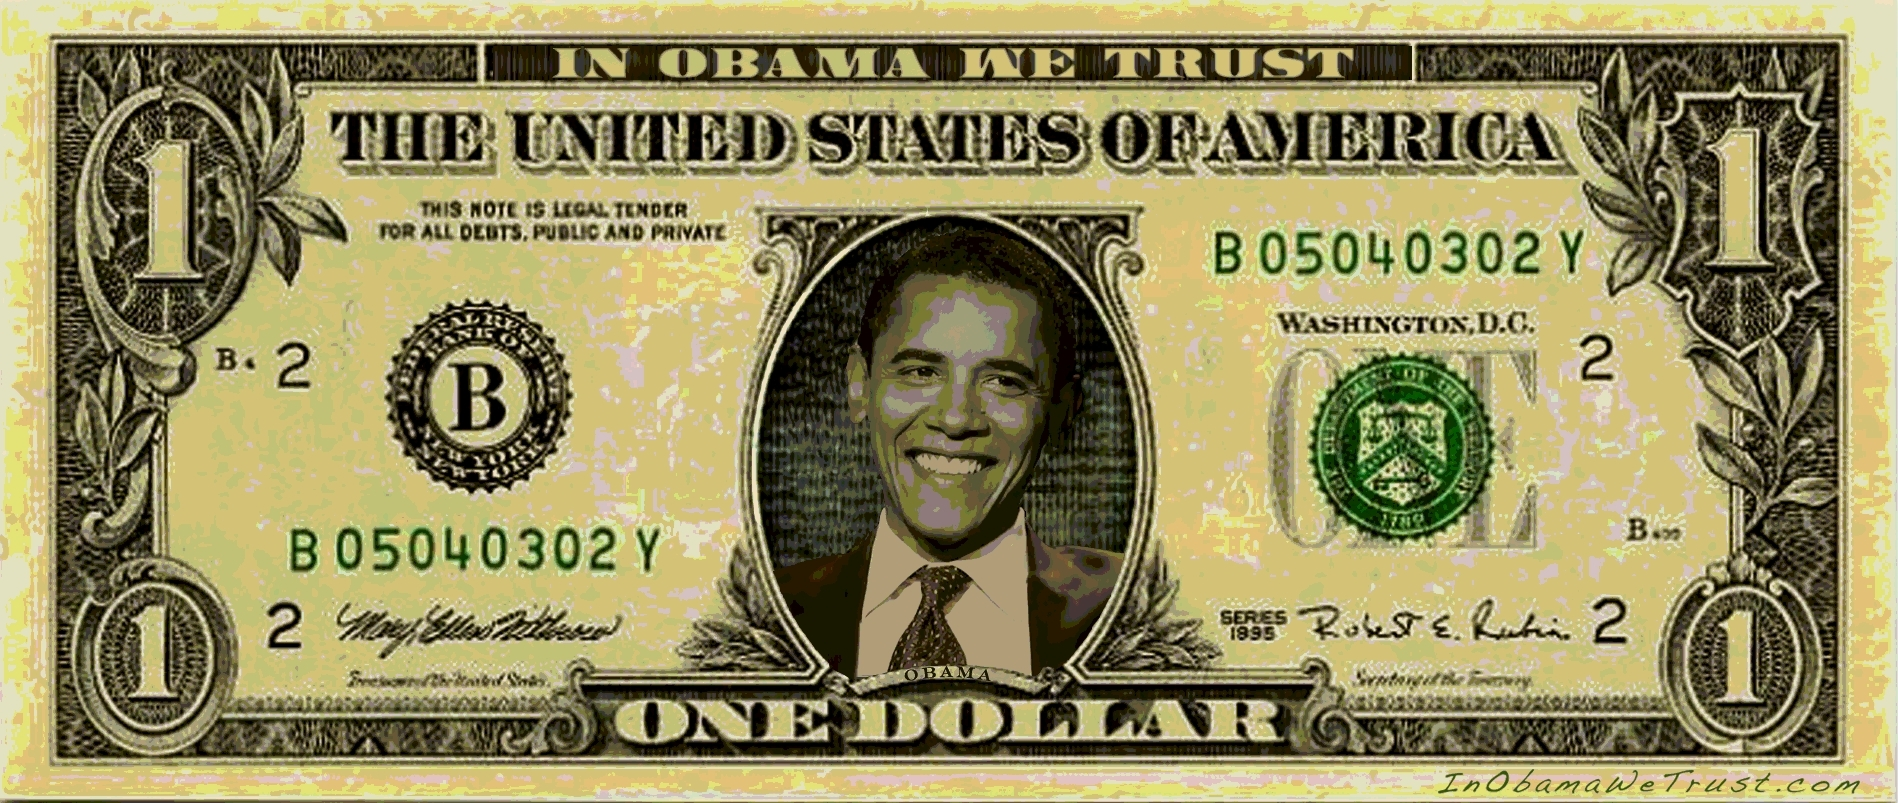 Presidents barack obama Dollar HD Wallpaper